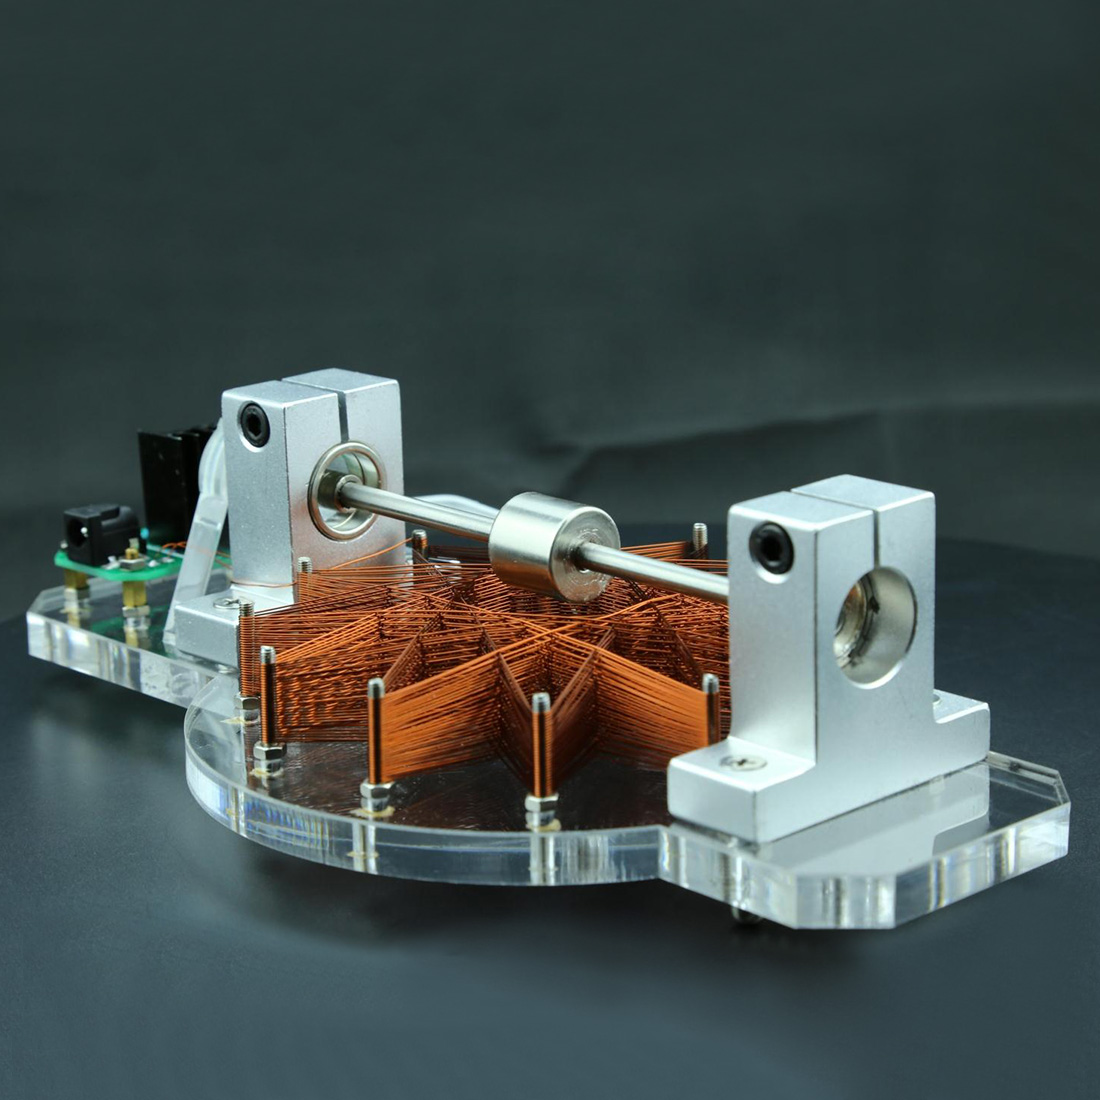 STARK 41 High Speed Magnetic Motor Brushless Hall Electric Machine Physical Experiment Model Building Kits Toys For Kids Adults